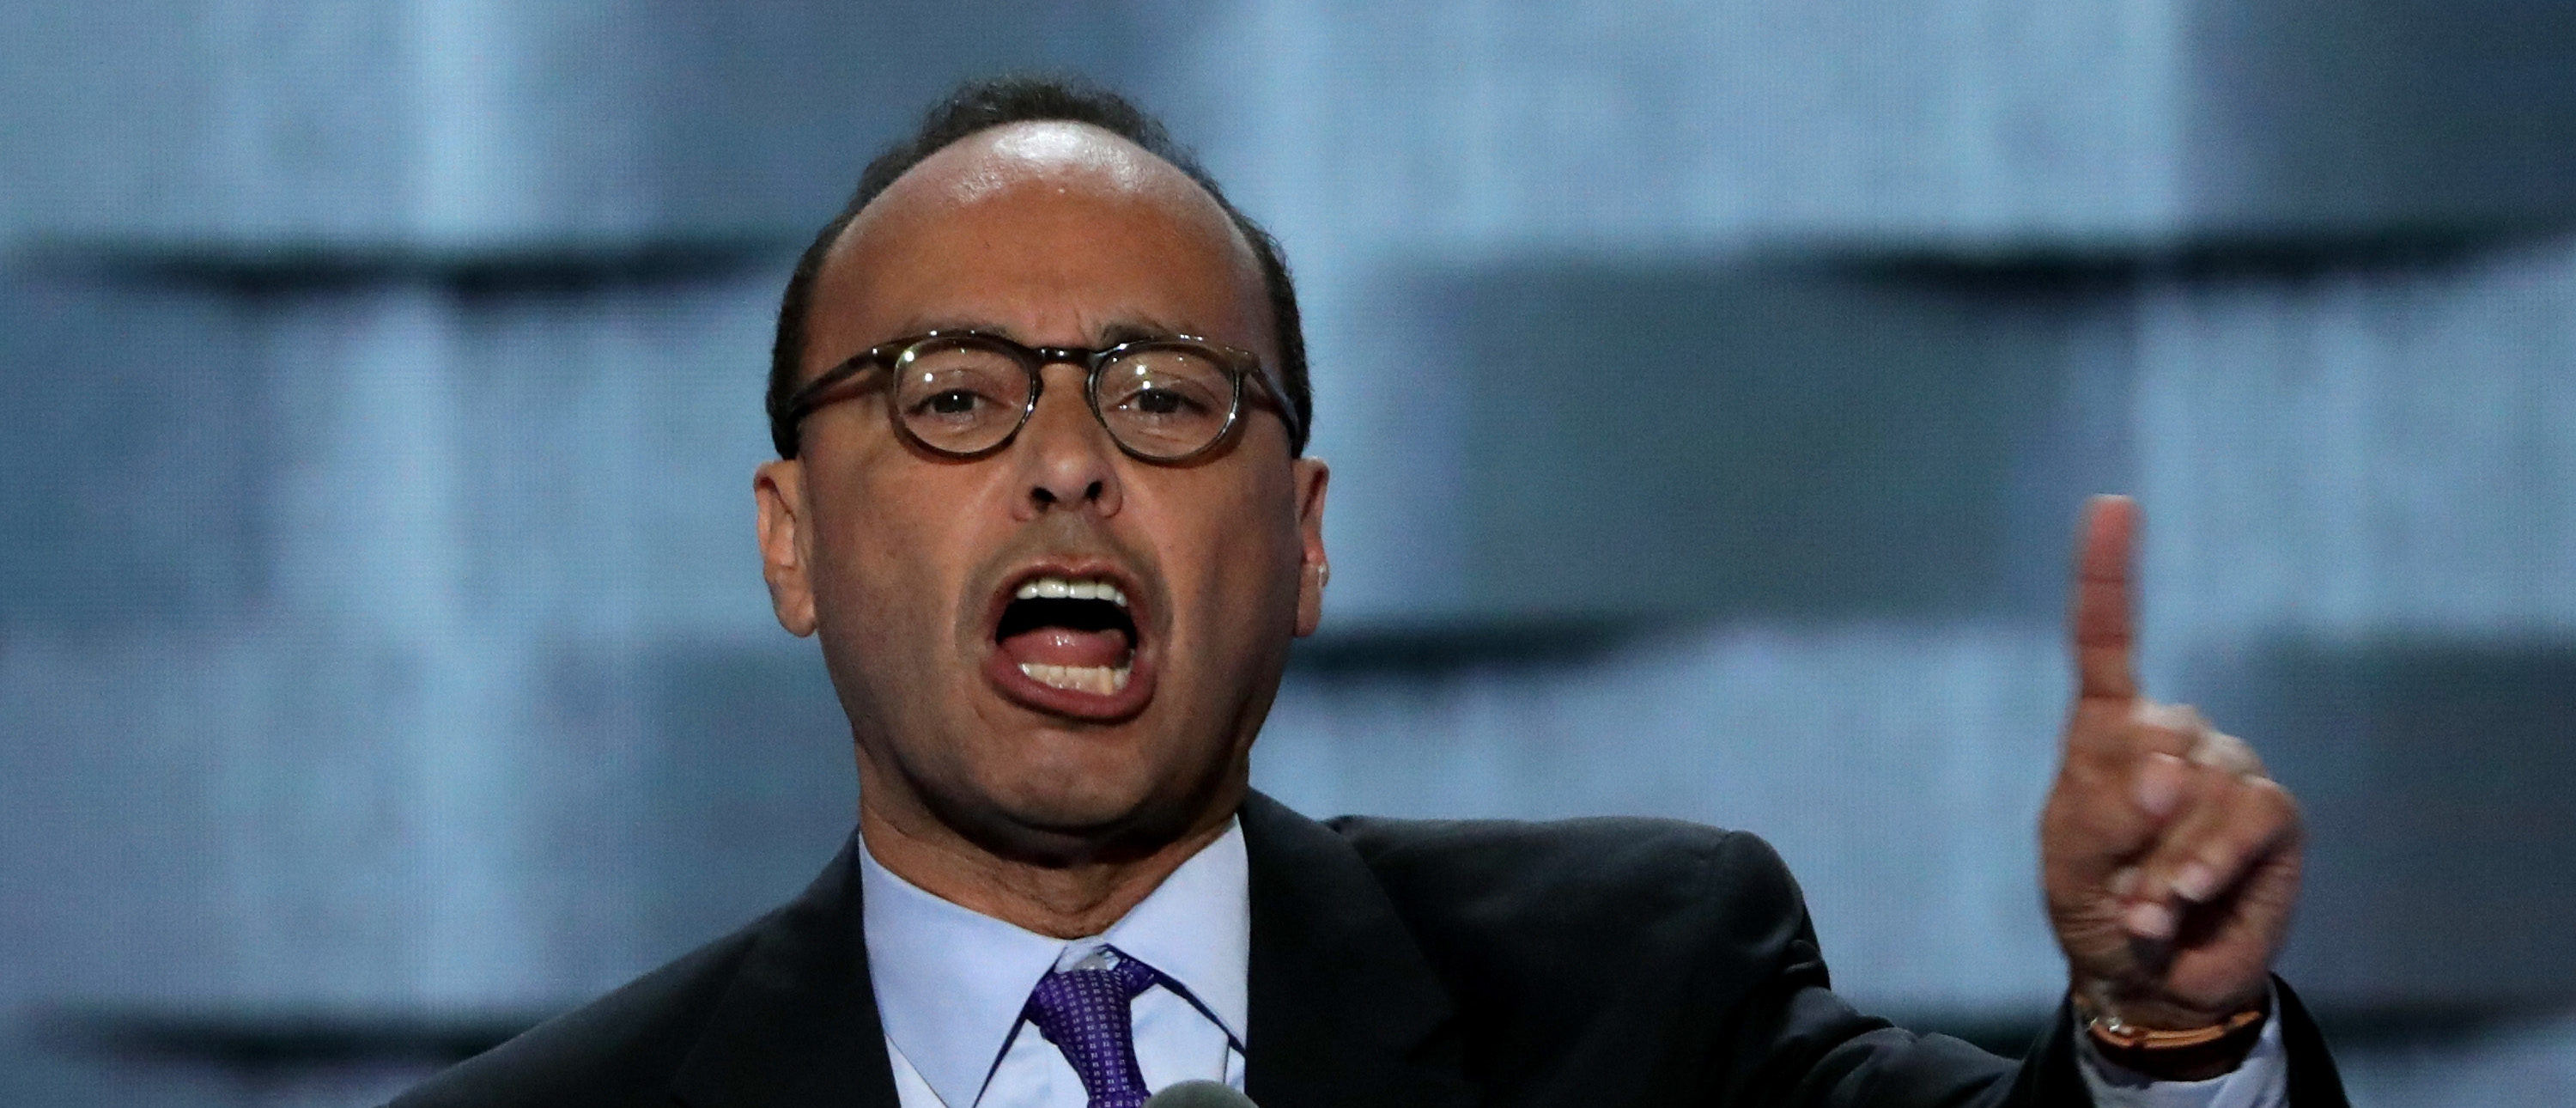 PHILADELPHIA, PA - JULY 25: Rep. Luis Gutiérrez (D-Ill) delivers remarks on the first day of the Democratic National Convention at the Wells Fargo Center, July 25, 2016 in Philadelphia, Pennsylvania. An estimated 50,000 people are expected in Philadelphia, including hundreds of protesters and members of the media. The four-day Democratic National Convention kicked off July 25. (Photo by Alex Wong/Getty Images)